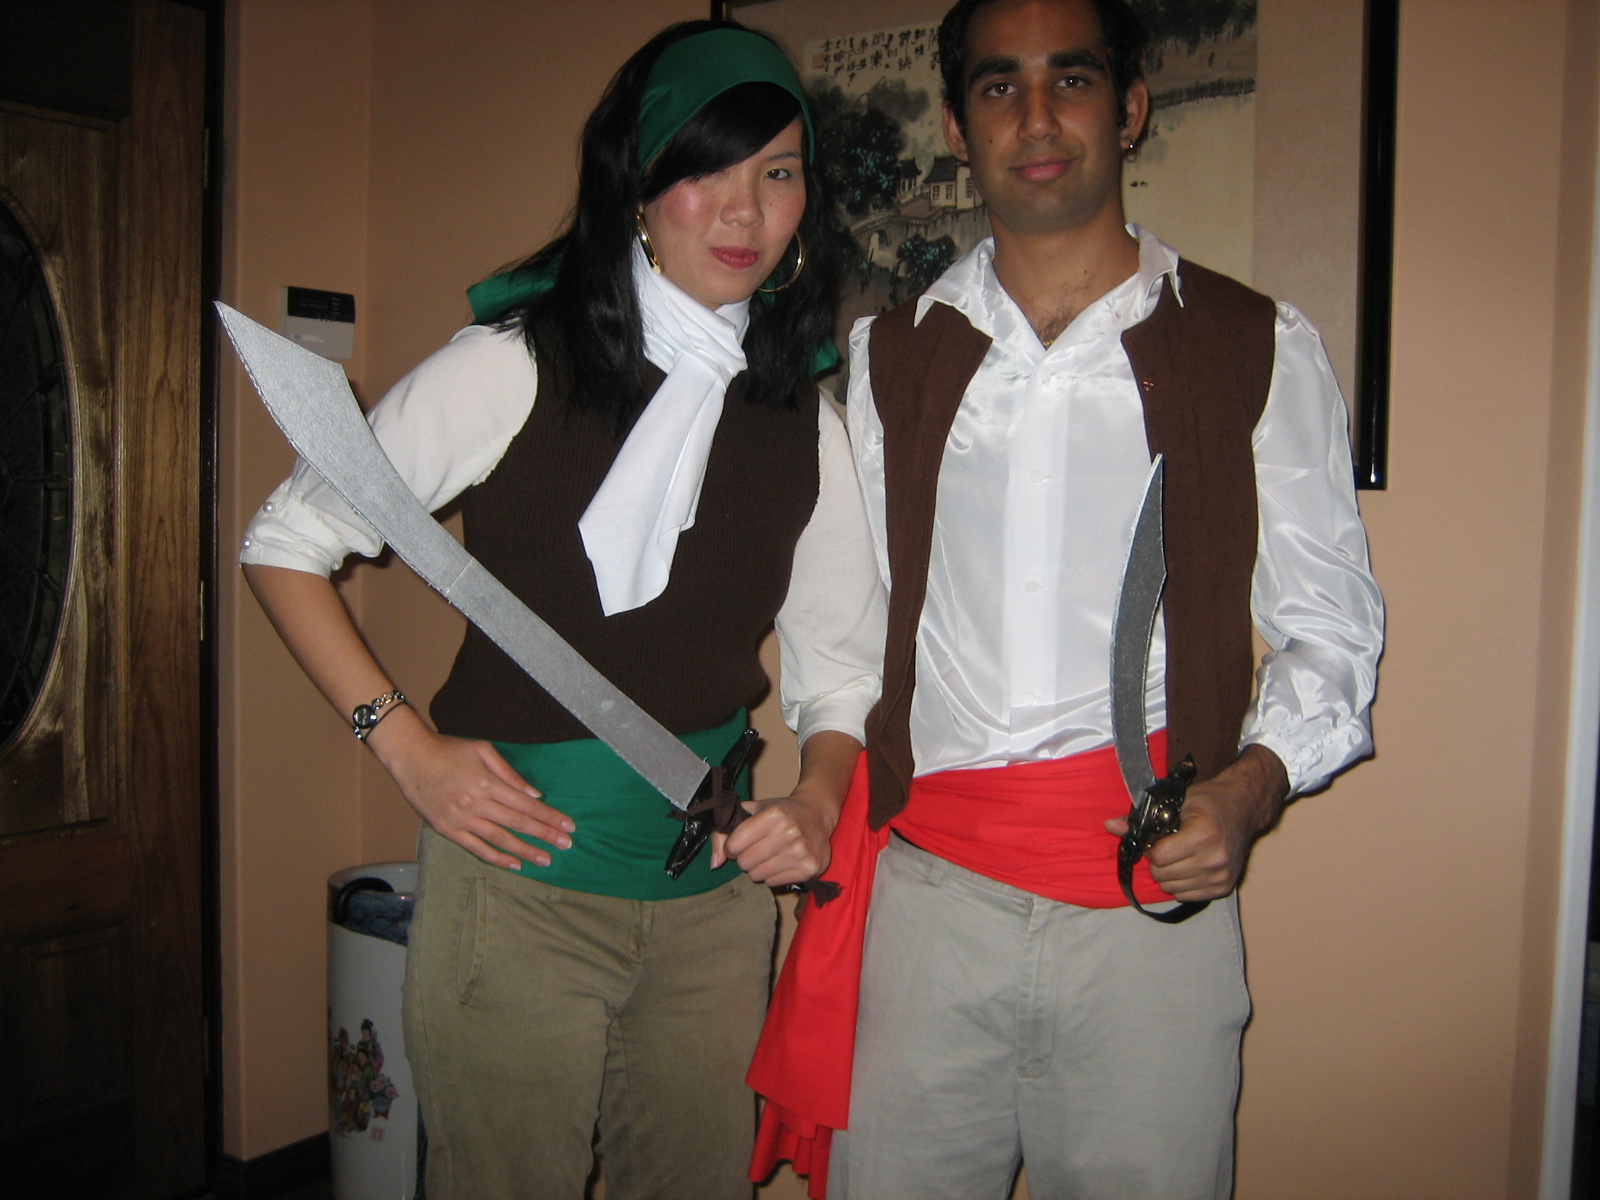 Picture of Guybrush Threepwood and Elaine Marley Pirate Costumes (Monkey Island)